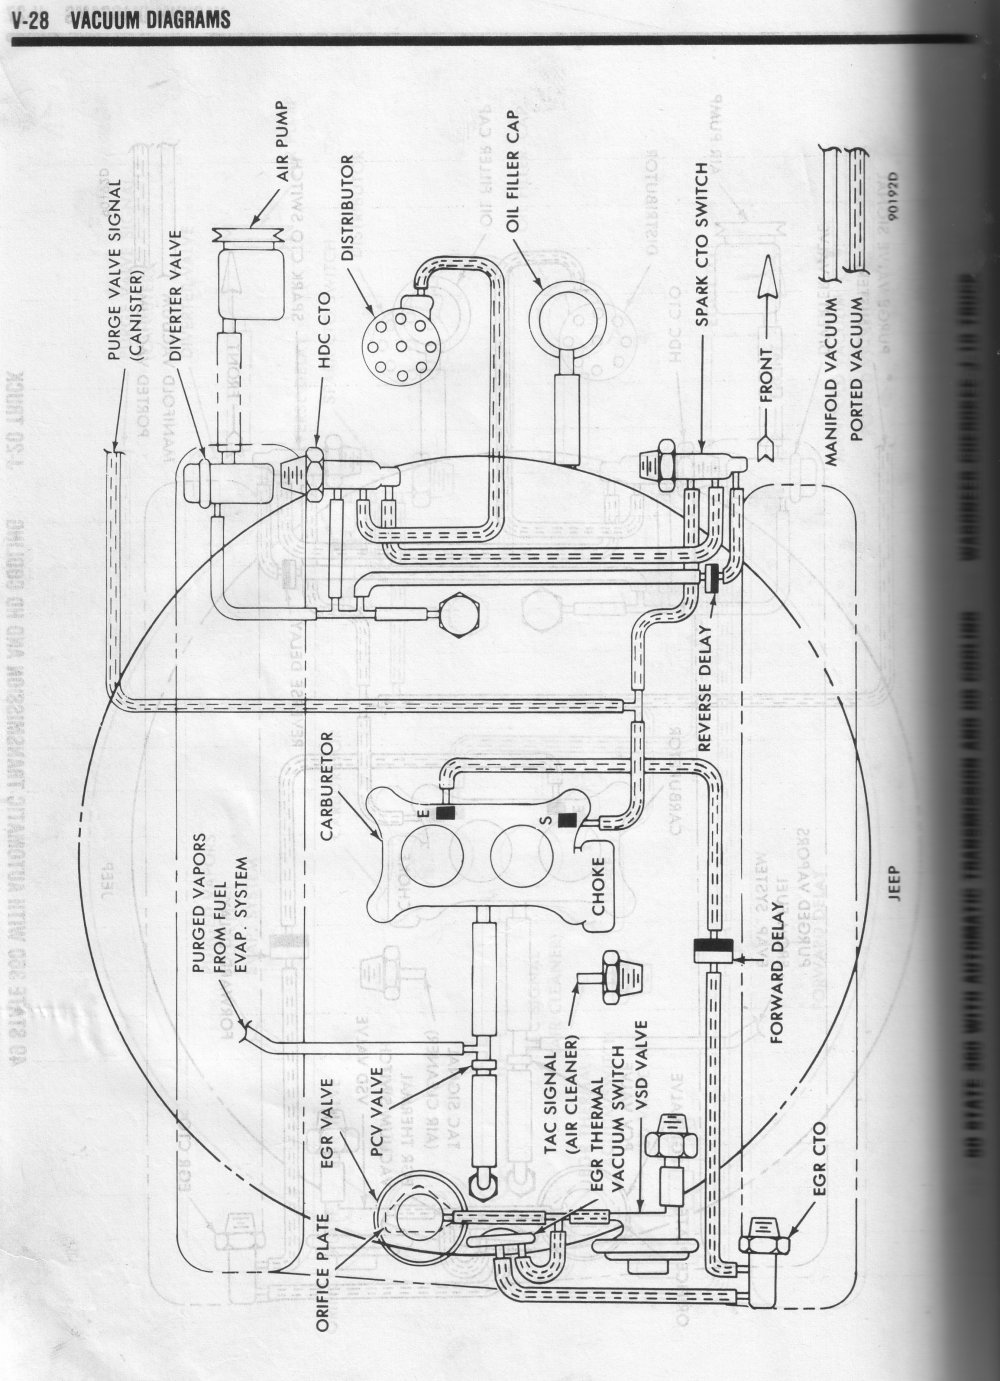 hight resolution of 1980 vacuum diagrams complete set in 1 winzip file approx 2 6 meg